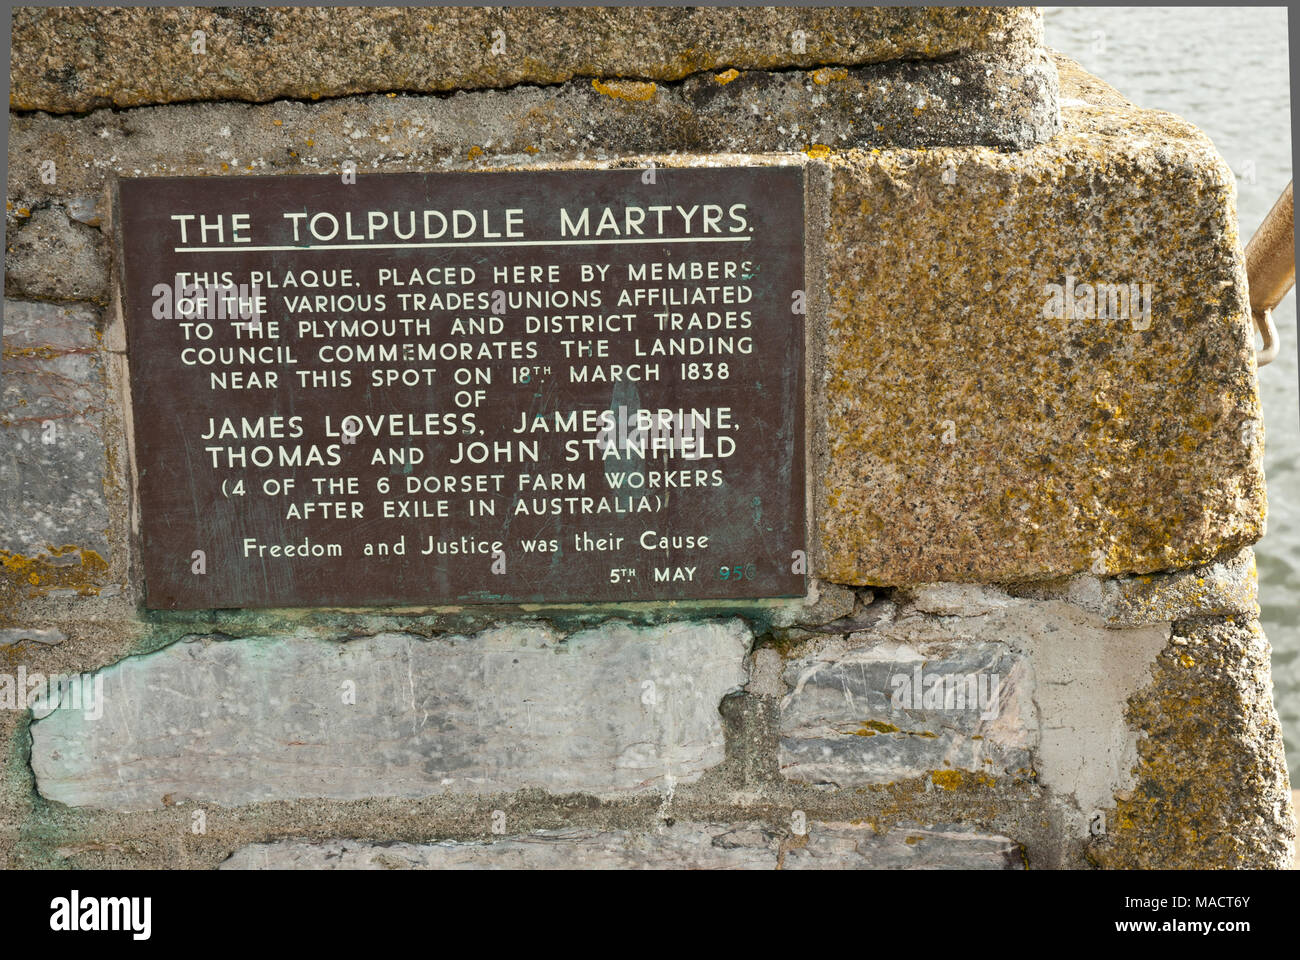 Plaque on the historic Barbican, Plymouth to commemorate the landing of the Tolpuddle martyrs on their return form exile in Australia; Stock Photo